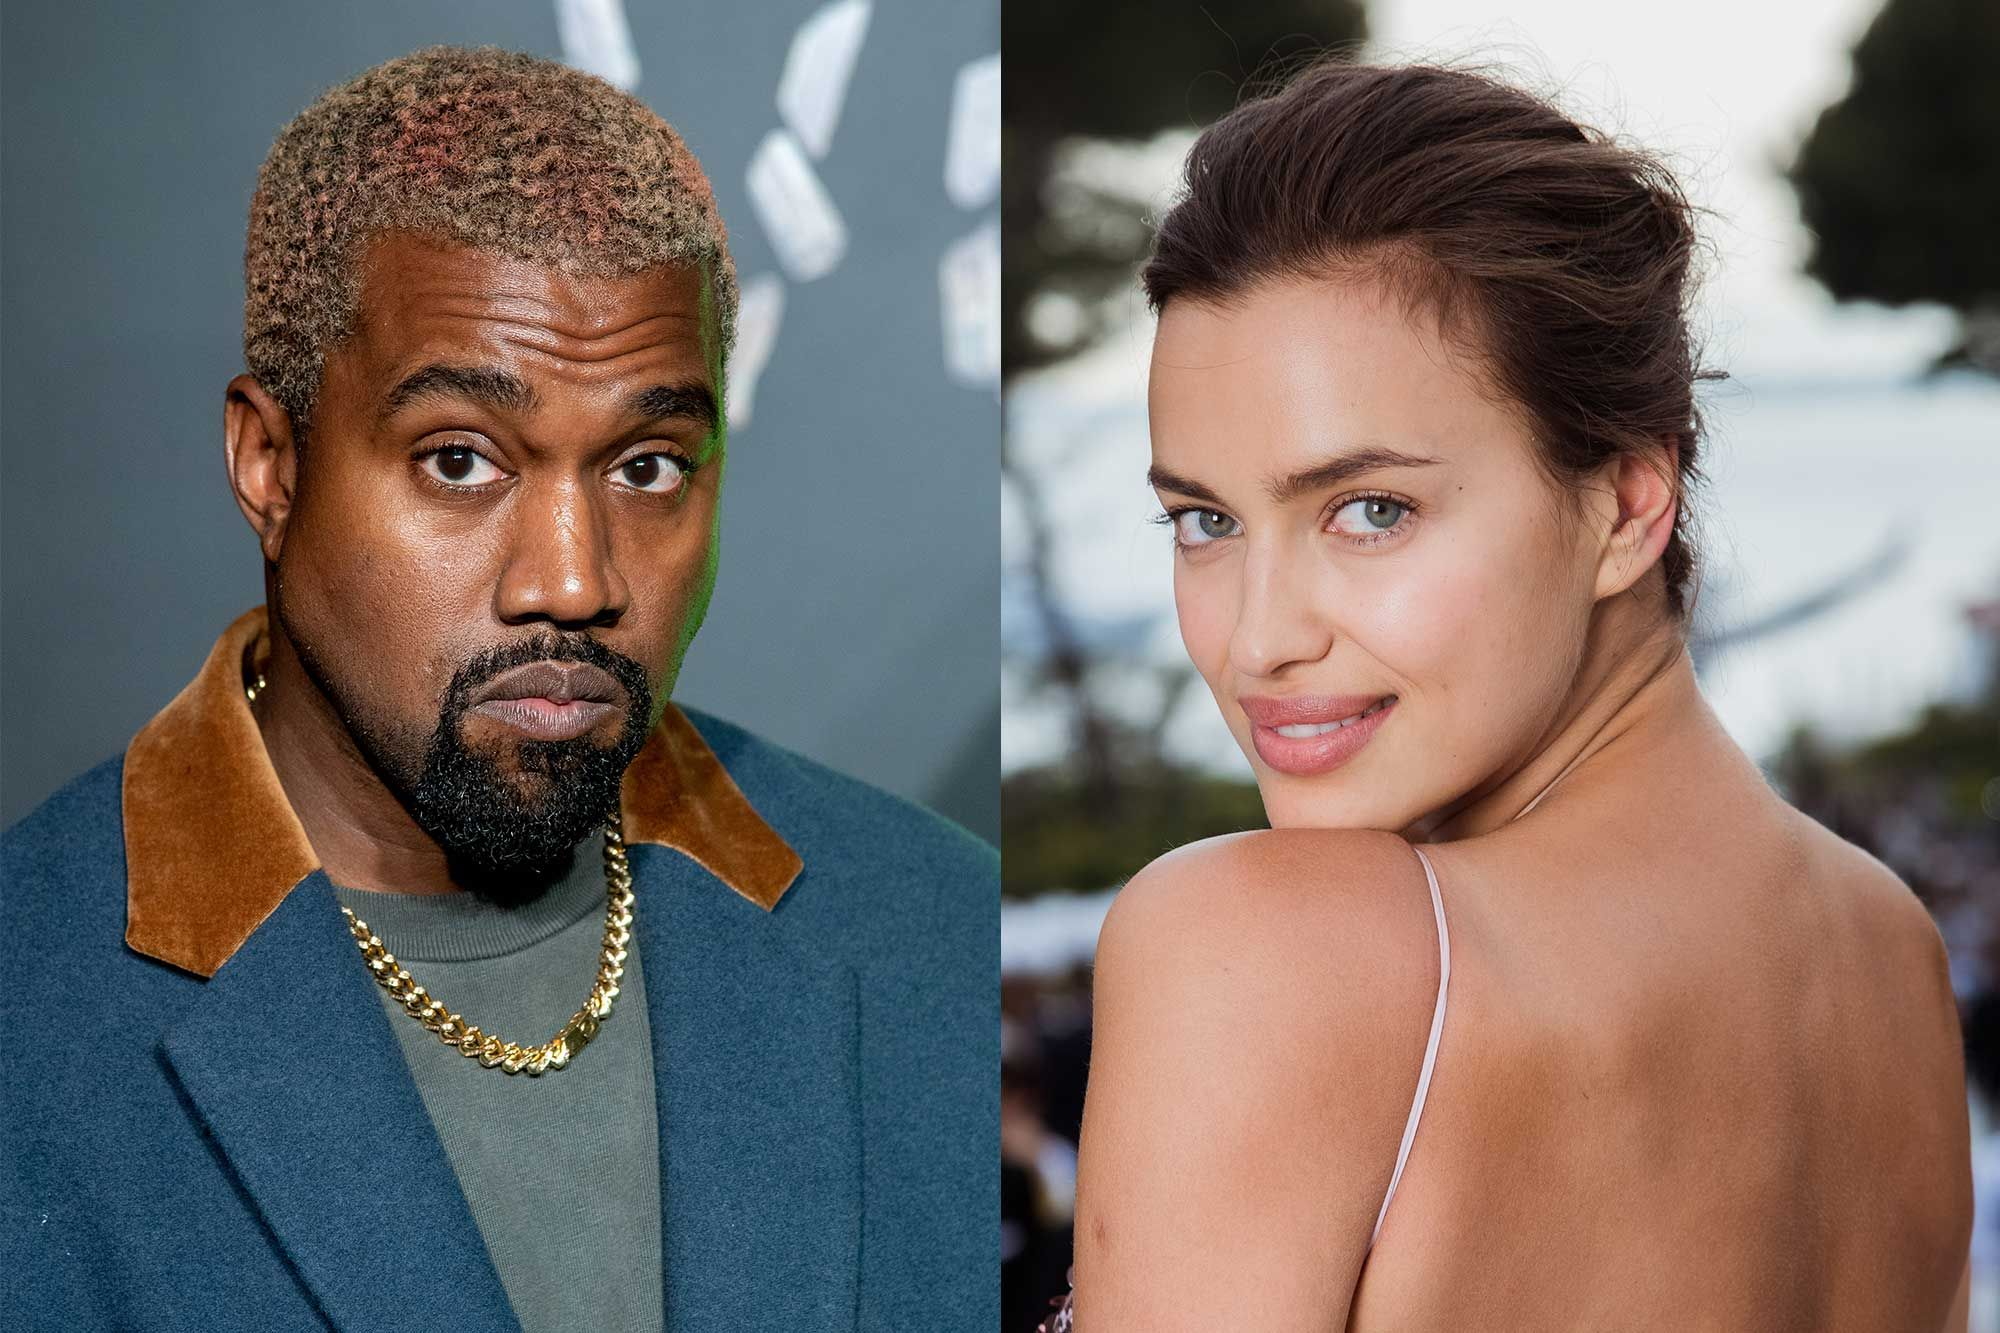 Are Irina Shayk and Kanye West Fashion's New First Couple?